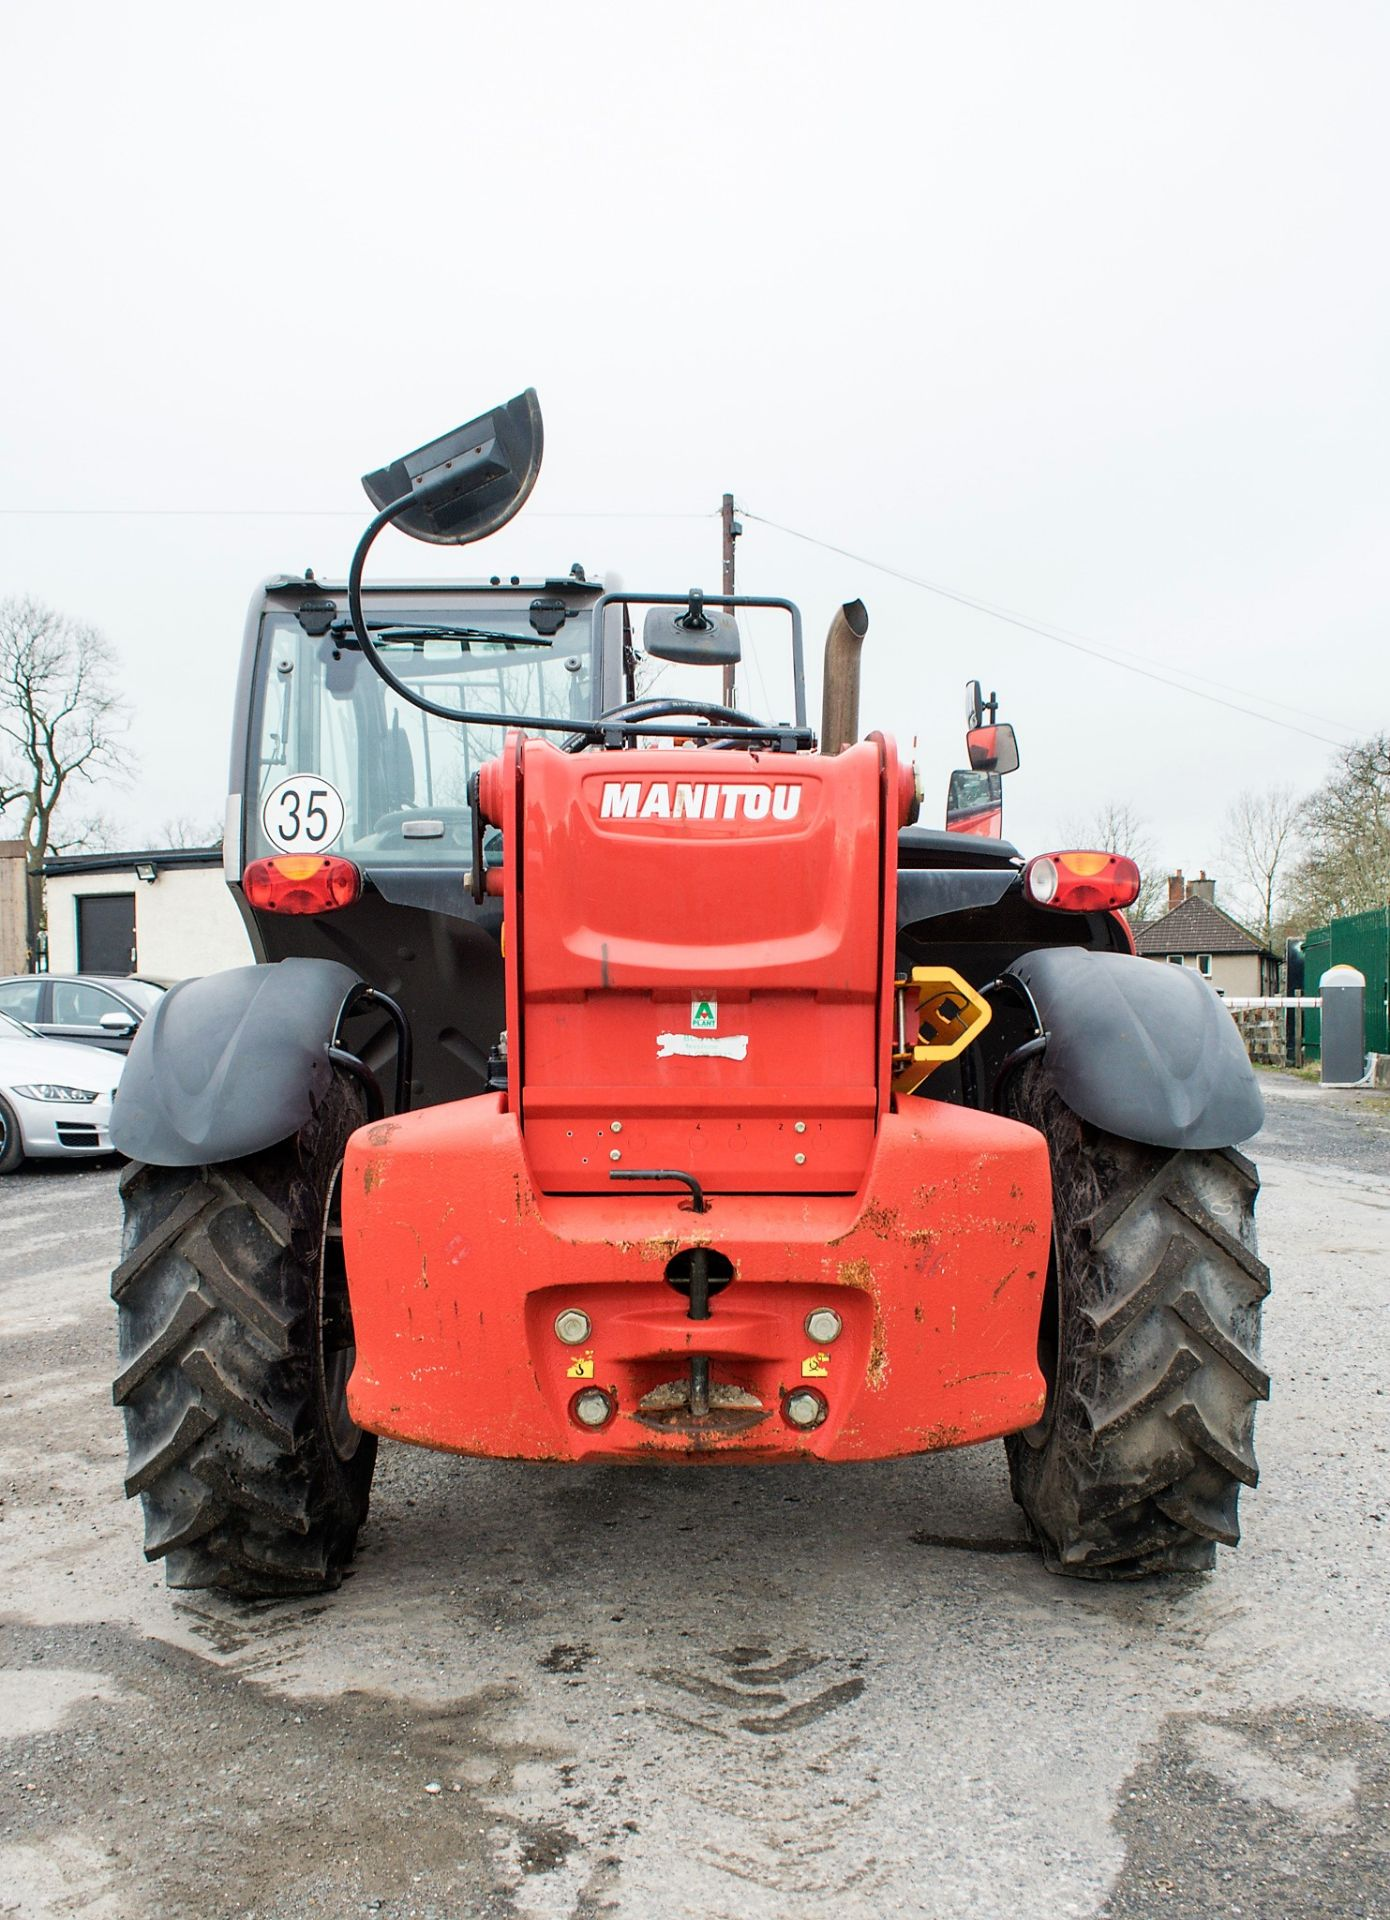 Lot 5 - Manitou MT1335 13 metre telescopic handler Year: 2014 S/N: 941567 Recorded Hours: 1907 c/w sway